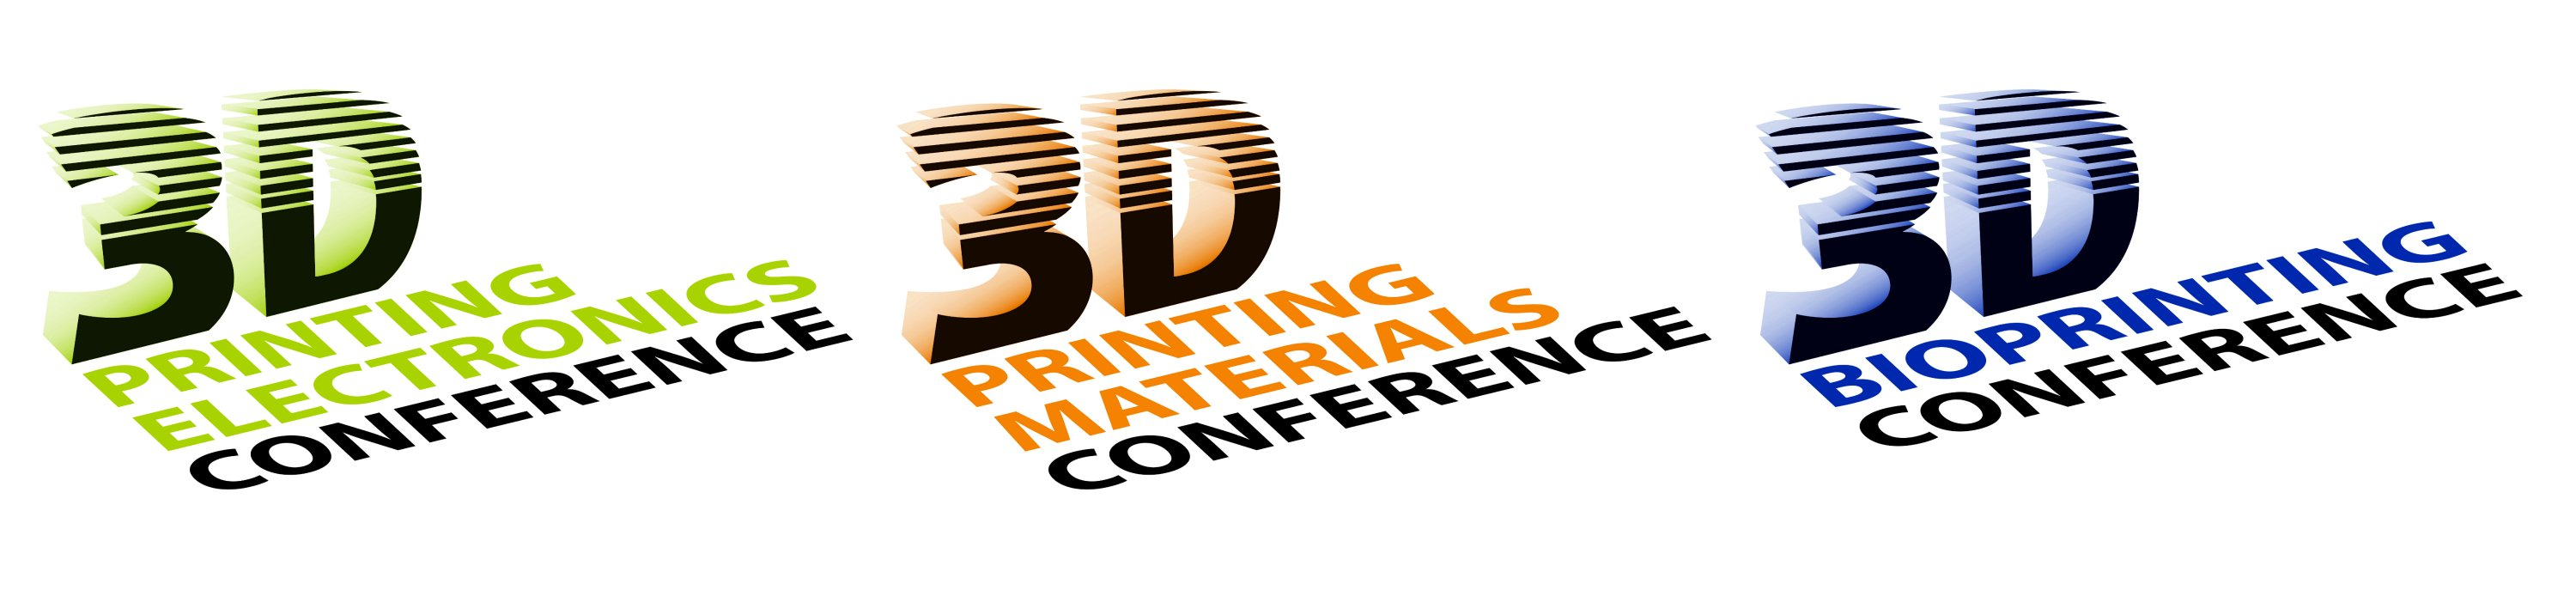 3D Conference